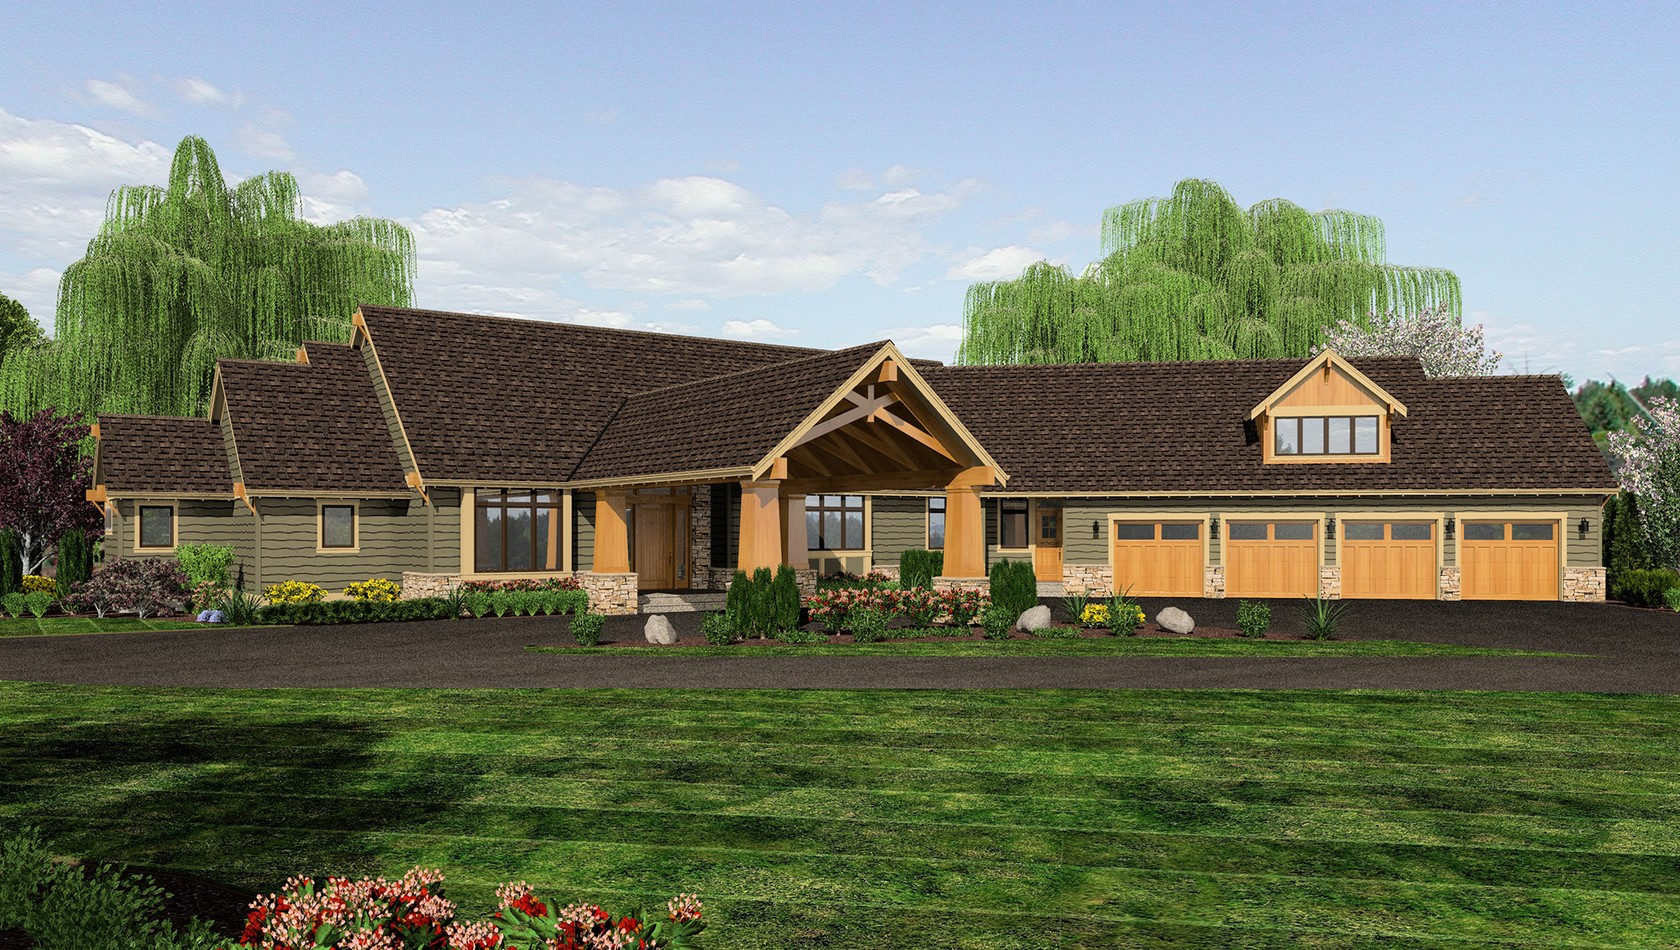 Main image for house plan 2464: The Manitoba